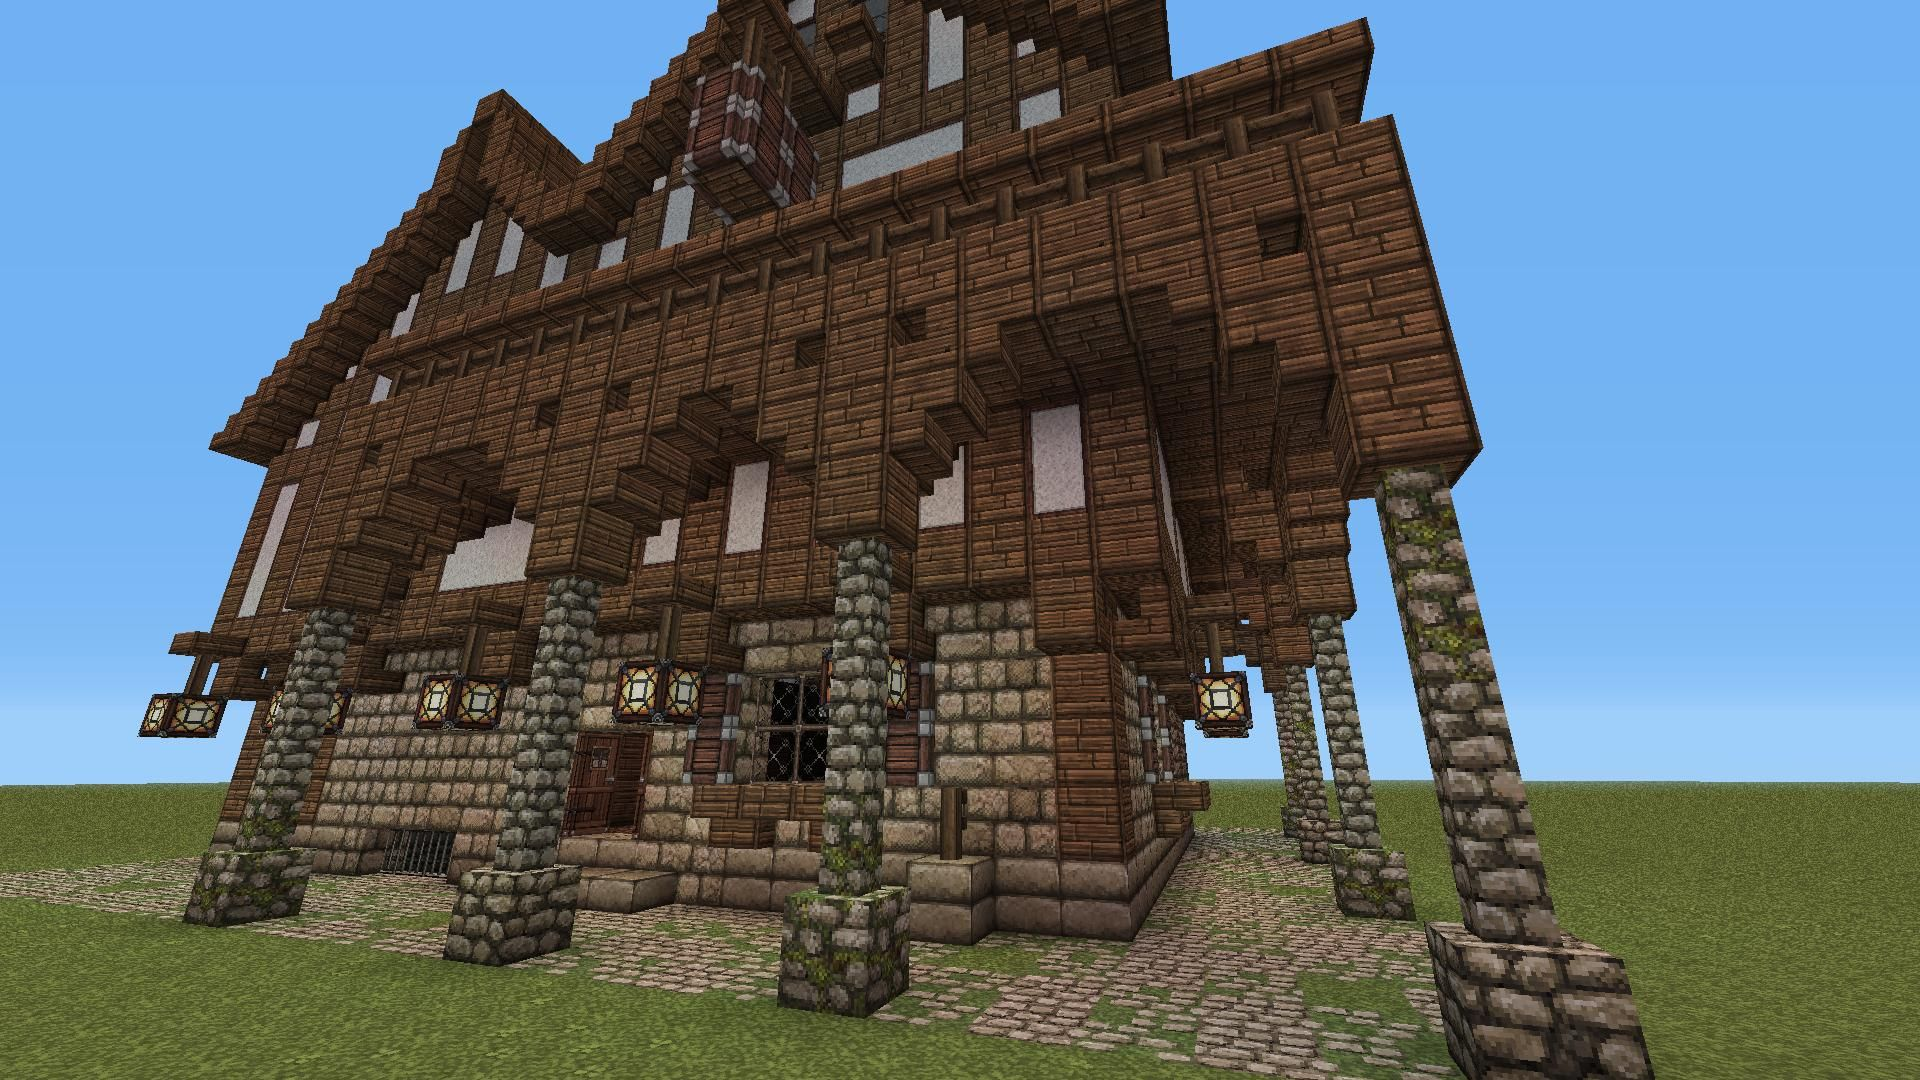 Medieval Minecraft Homes